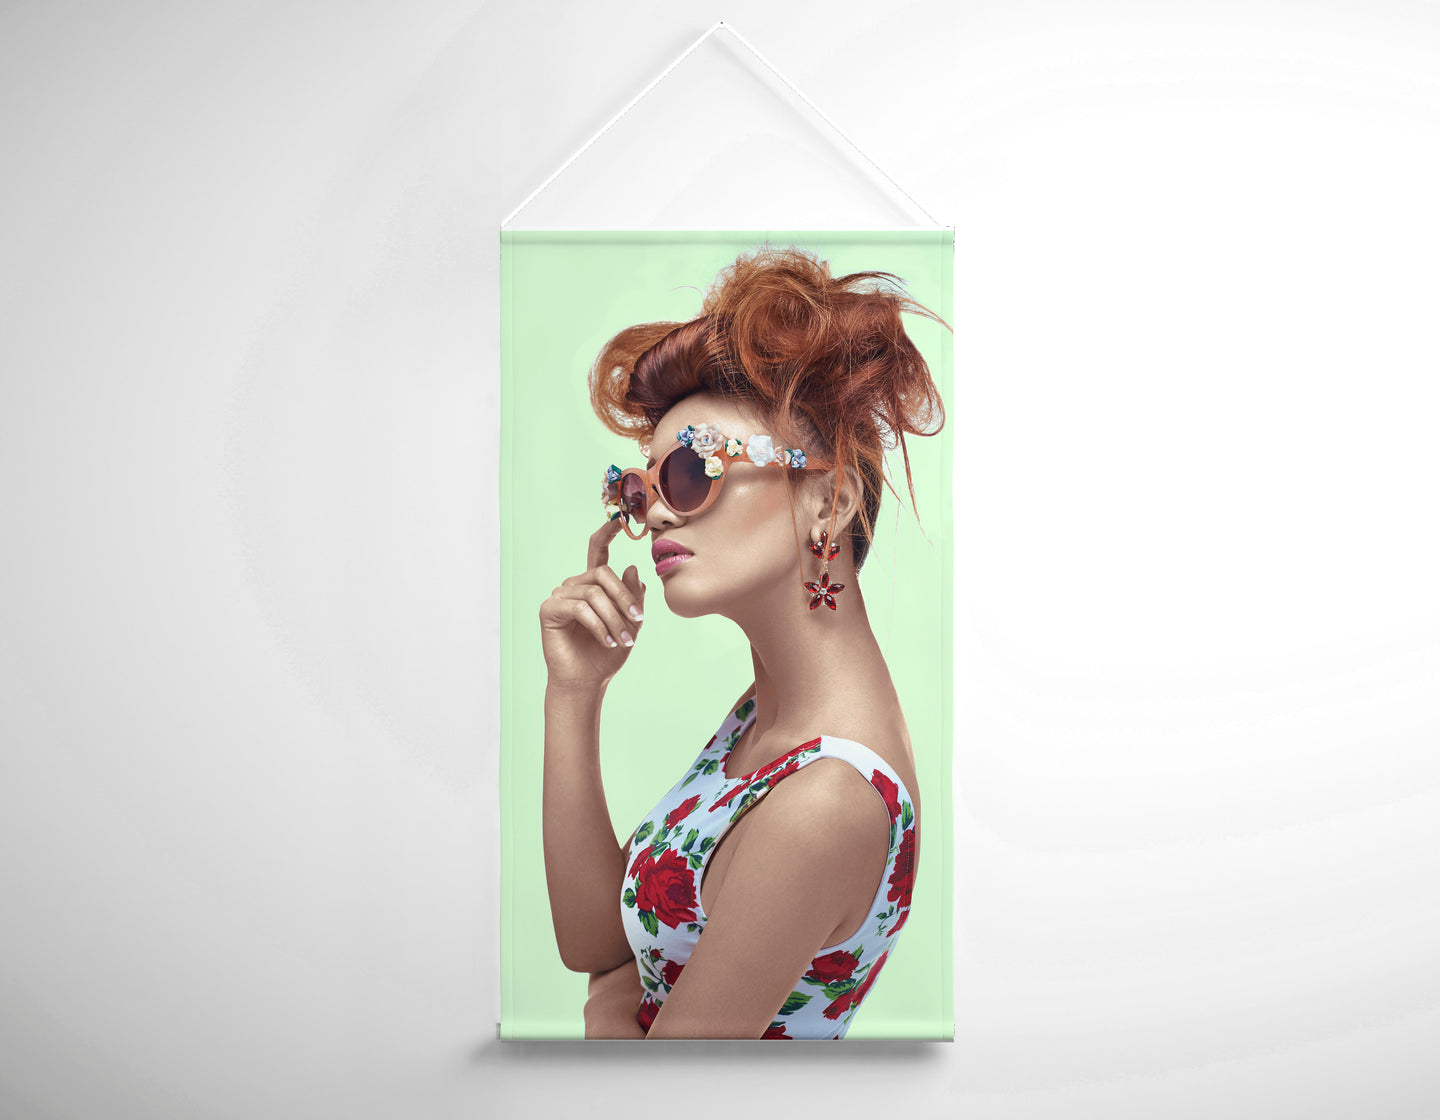 Textile Salon Banner - Woman in High Topknot with Slight Messy Tease